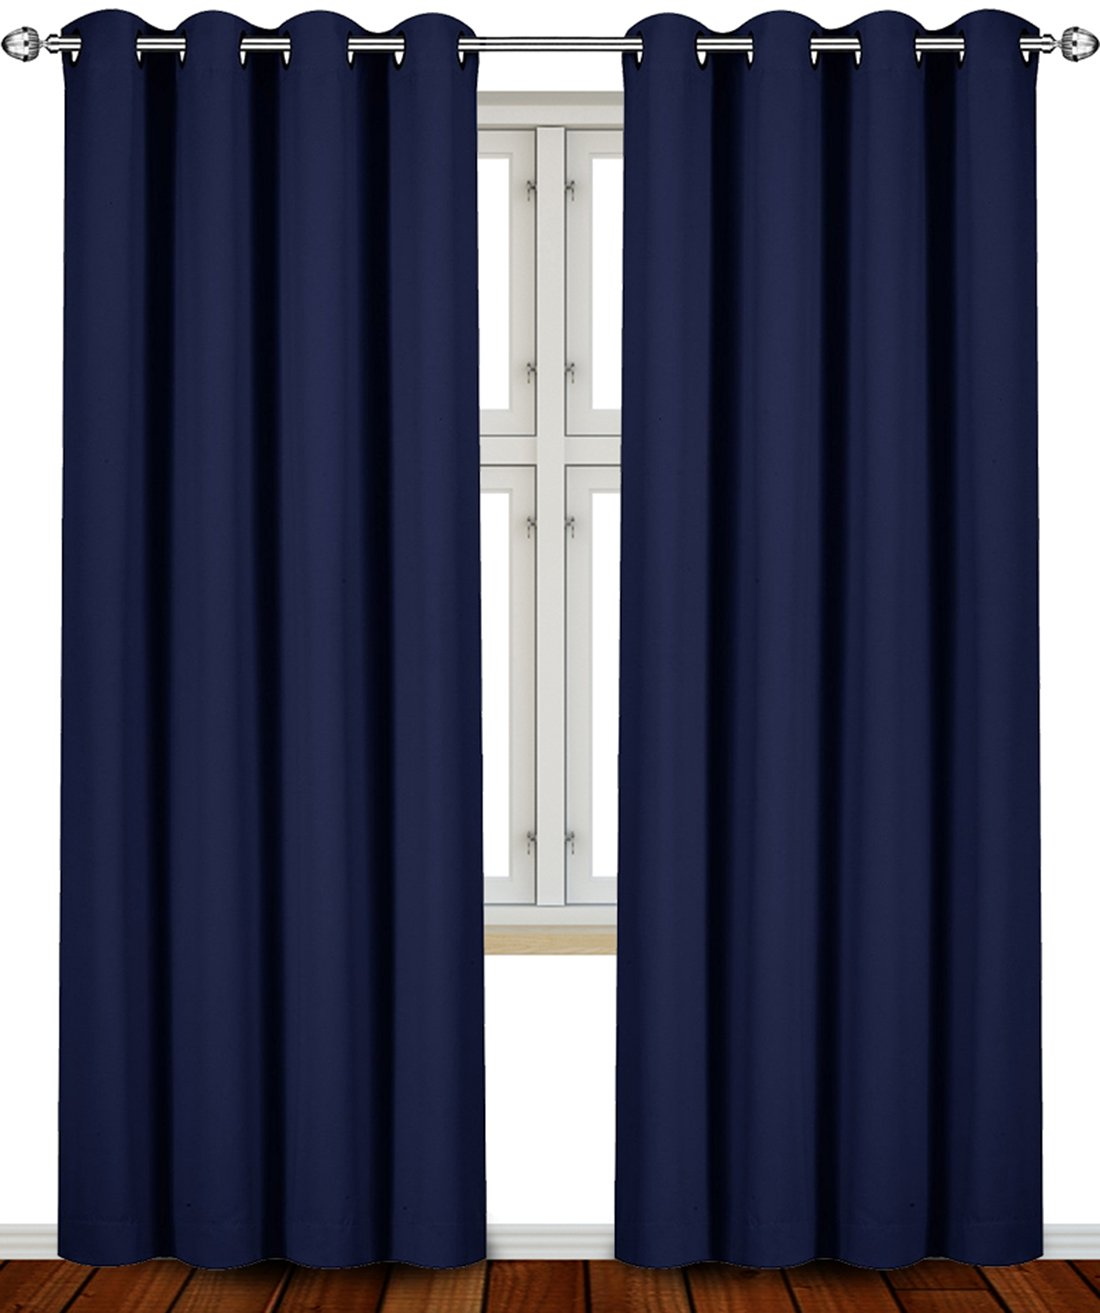 Utopia Bedding Blackout Room Darkening and Thermal Insulating Window Curtains/Panels/Drapes - 2 Panels Set - 8 Grommets per Panel - 2 Tie Backs Included (Navy, 52 x 84 Inches with Grommets) blackout curtains - 61PtmlobHxL - Blackout curtains – 7 best blackout curtains according to reviews